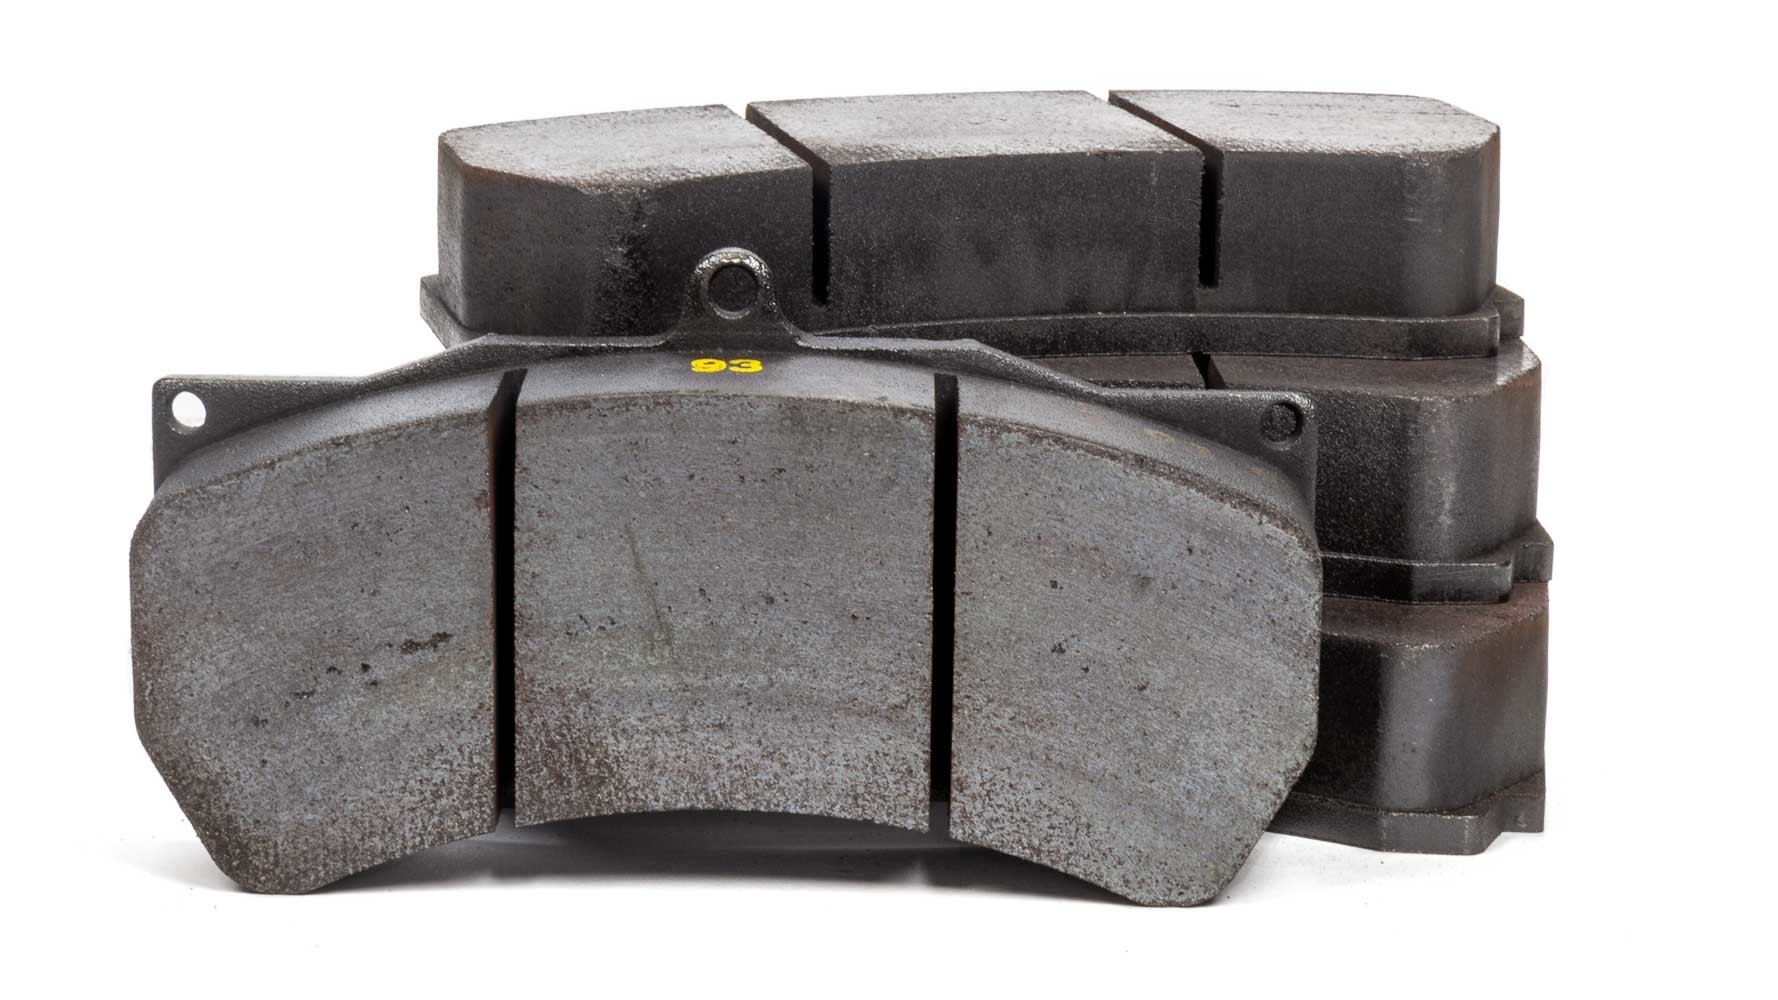 Performance Friction 7790-93-29-34 Brake Pads, 93 Compound, All Temperatures, AP / Brembo 6 Piston Calipers, Set of 4